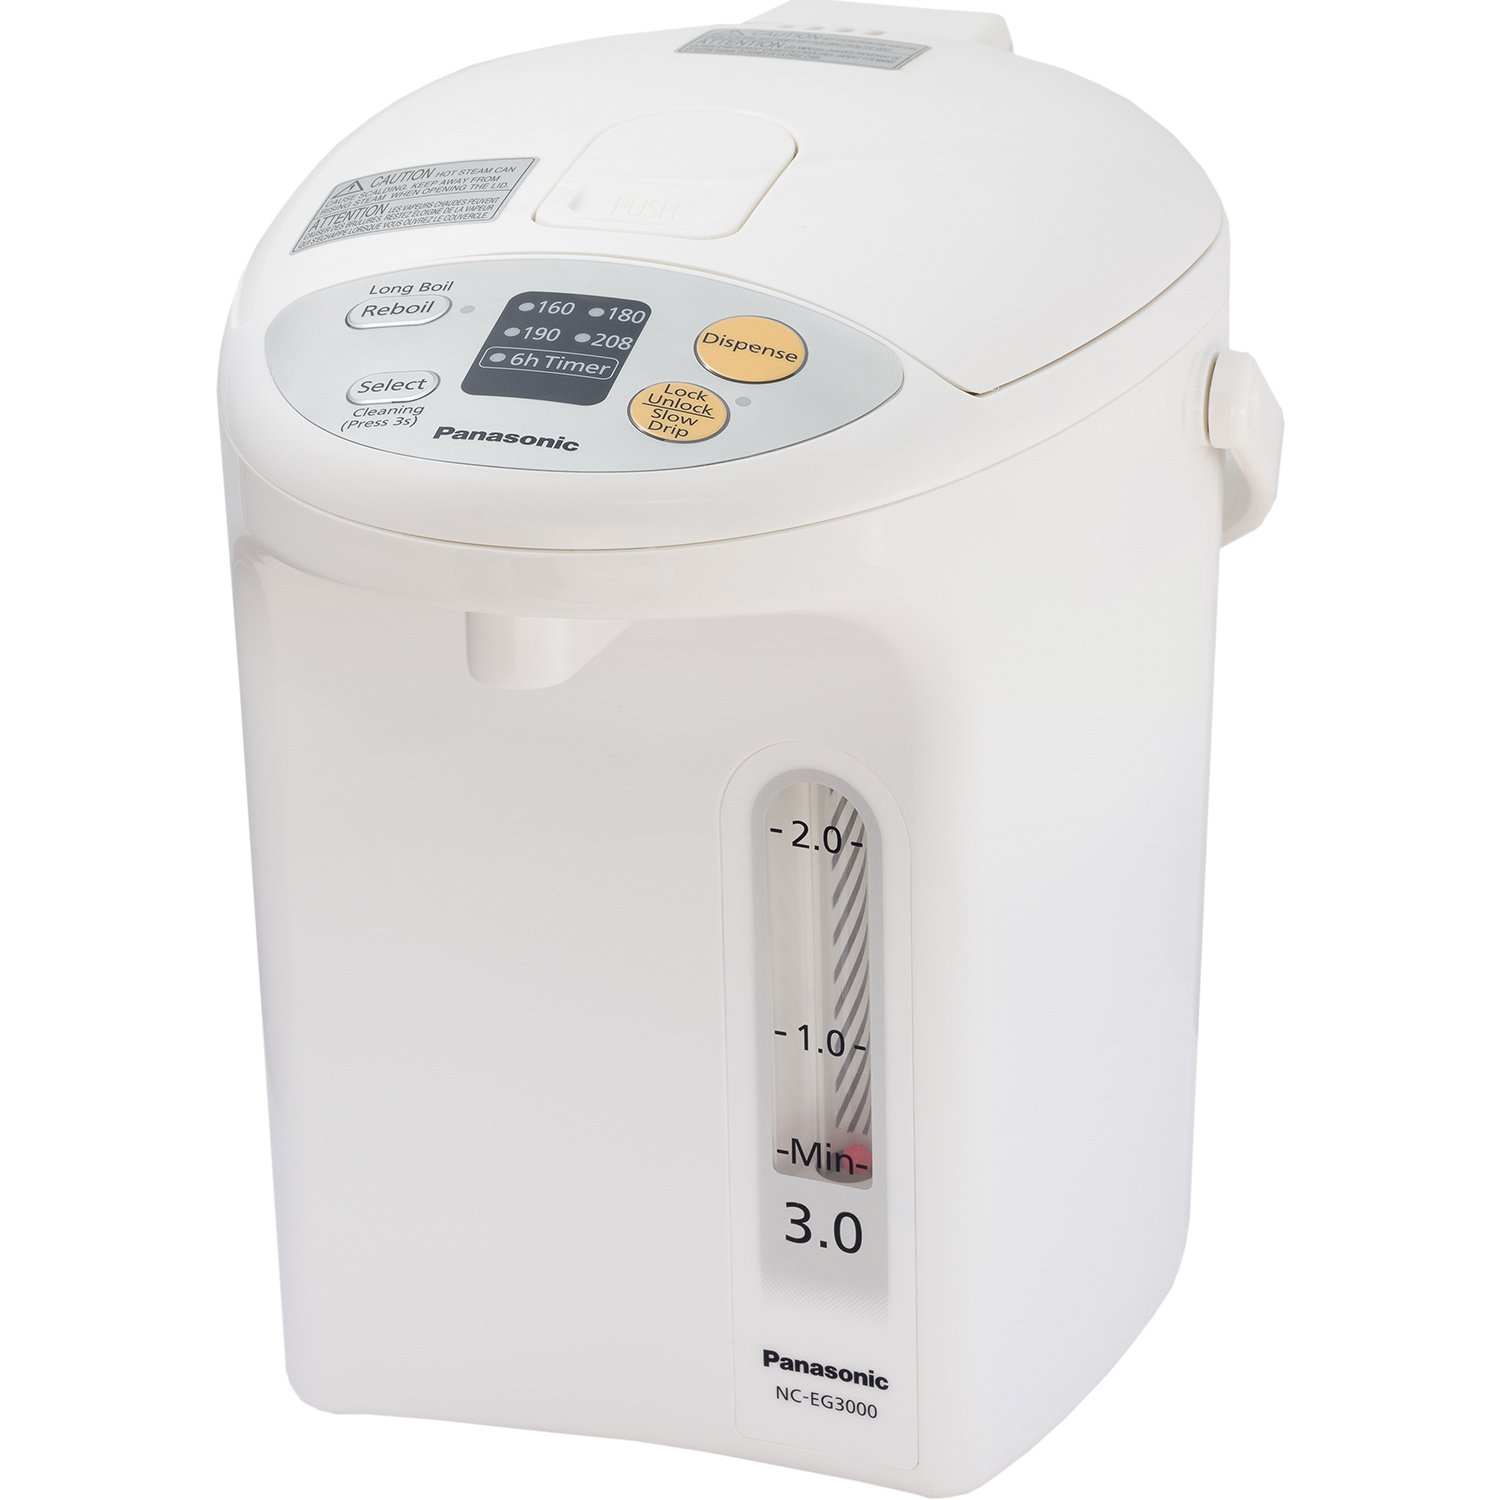 Panasonic RA41660 Electric Thermo Pot Water Boiler Dispenser NC-EG3000, Slow-Drip Mode for Coffee, Ideal for Tea, Hot Cocoa, Soups and Baby Food, Four TEM, 3.2 quarts, White by Panasonic